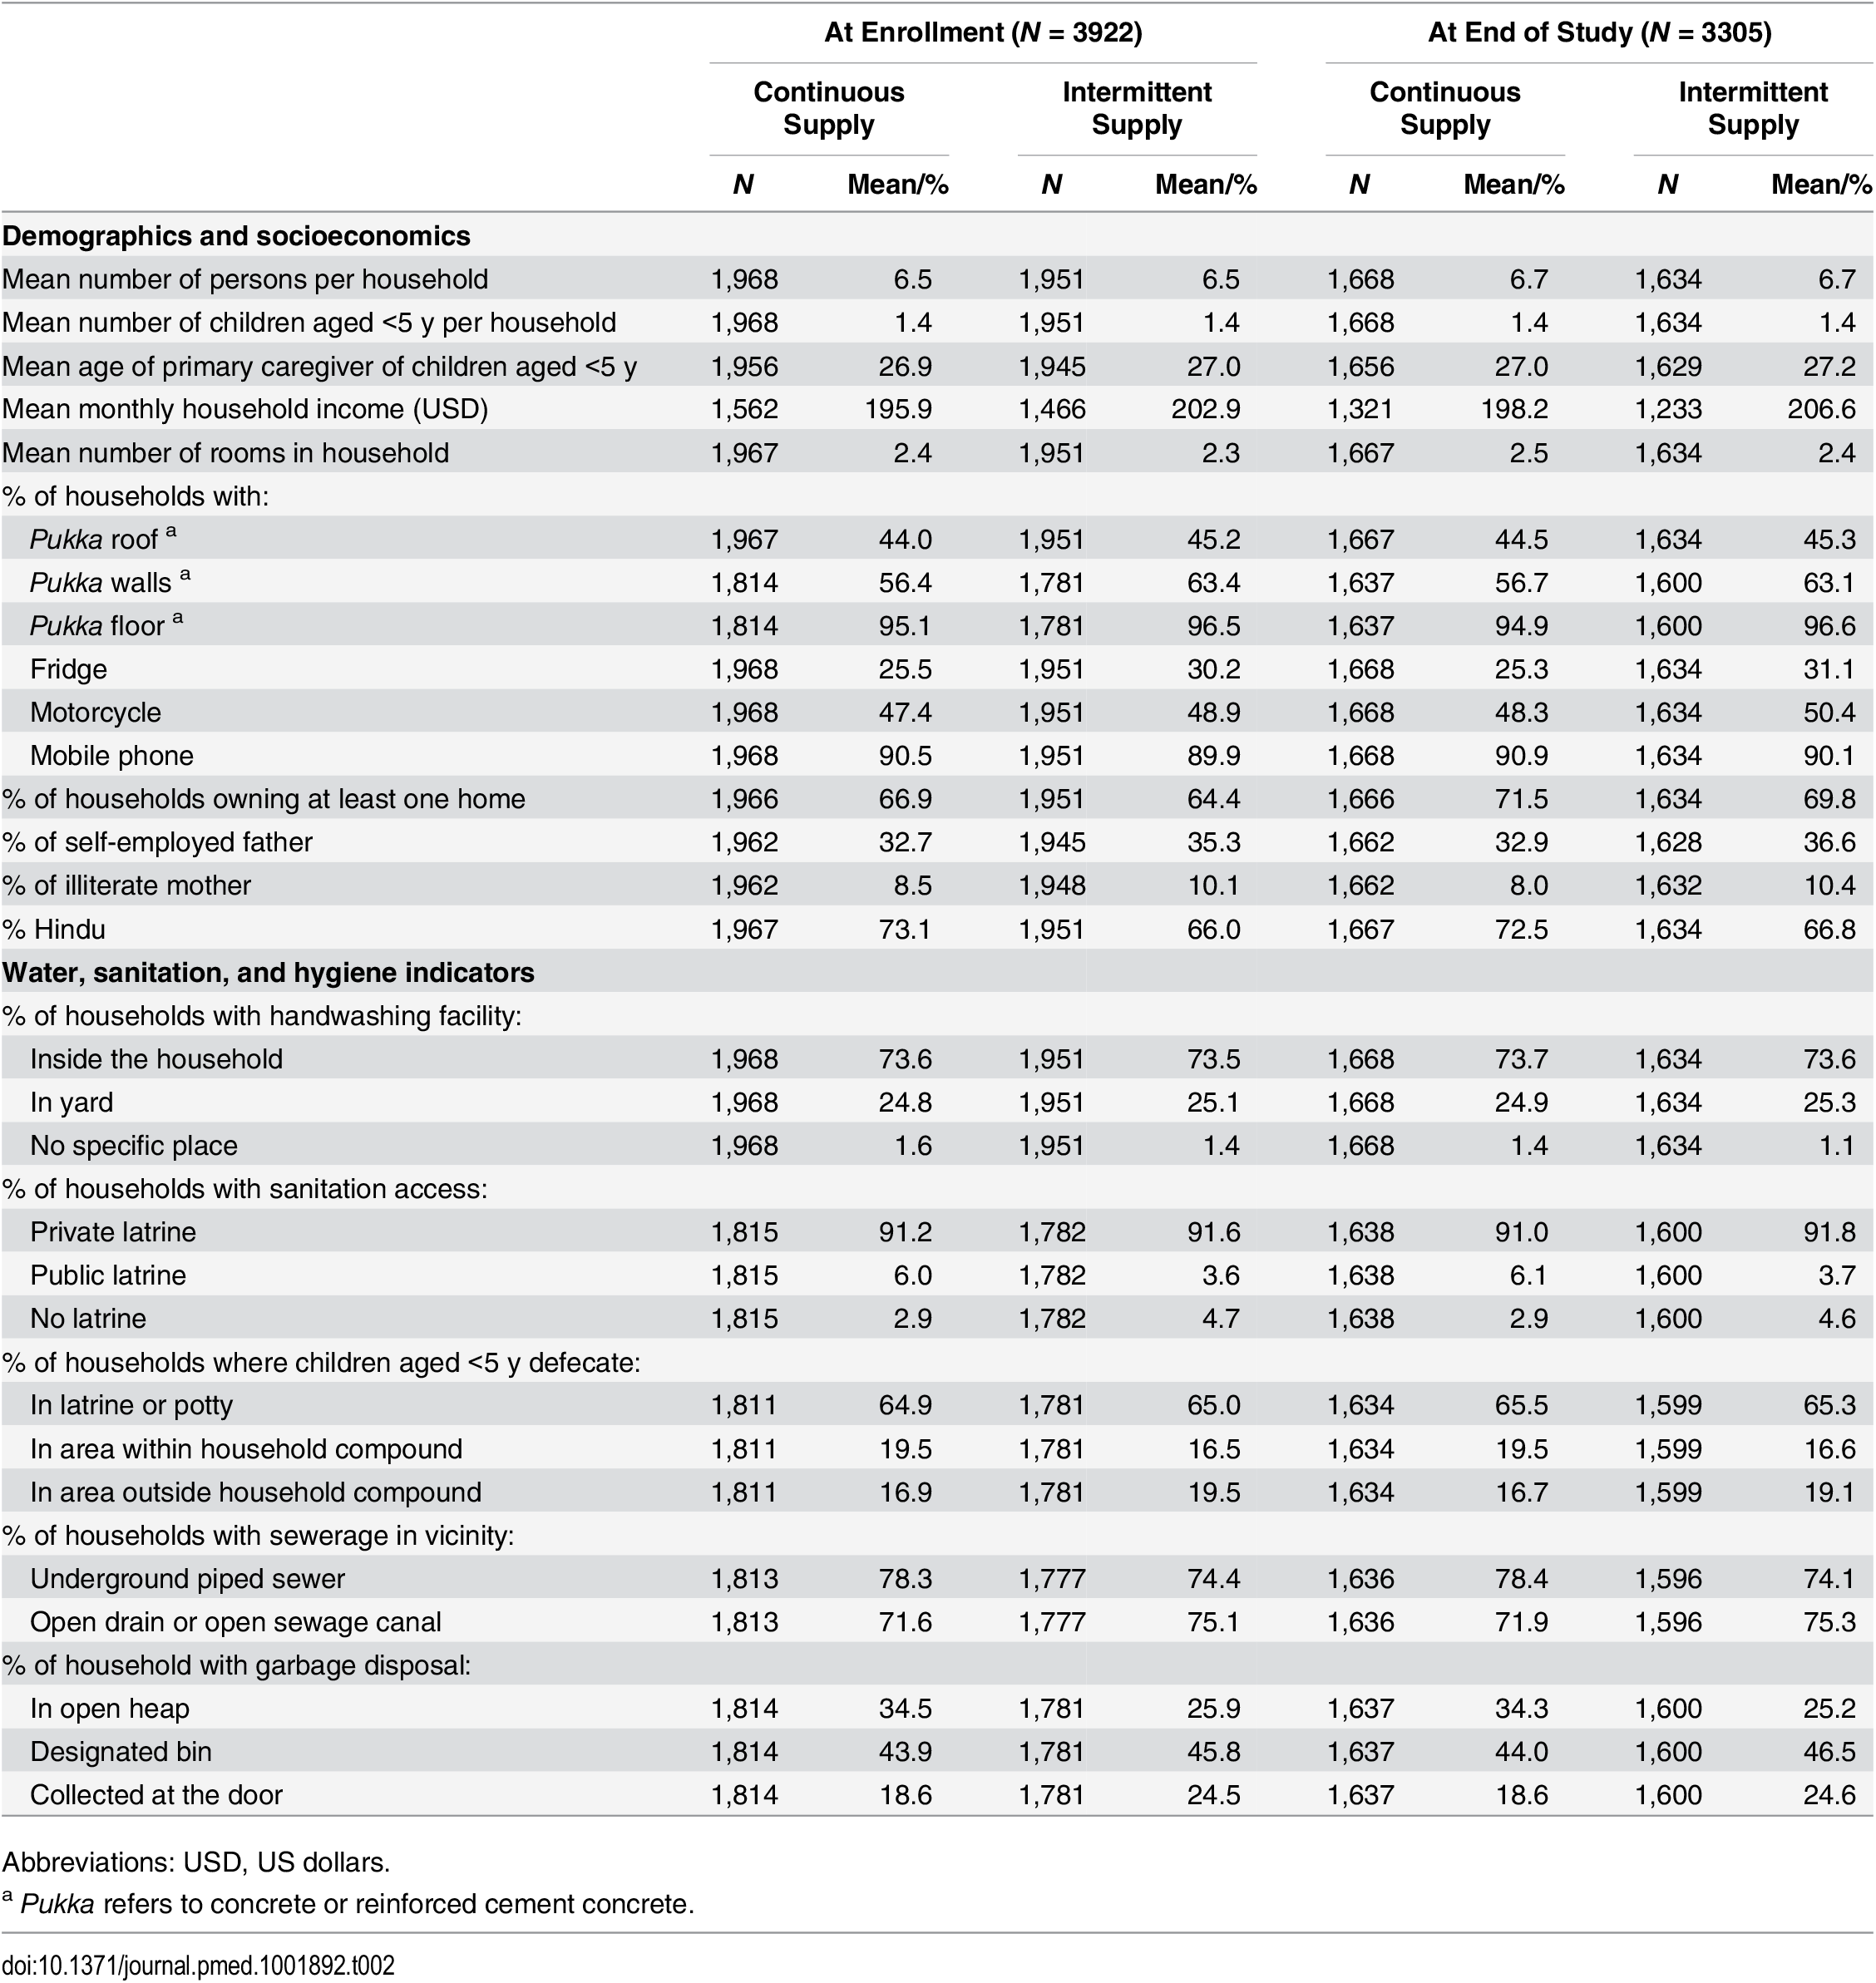 Comparison of household characteristics by study group (among all households at enrollment and among households that remained at end of study).